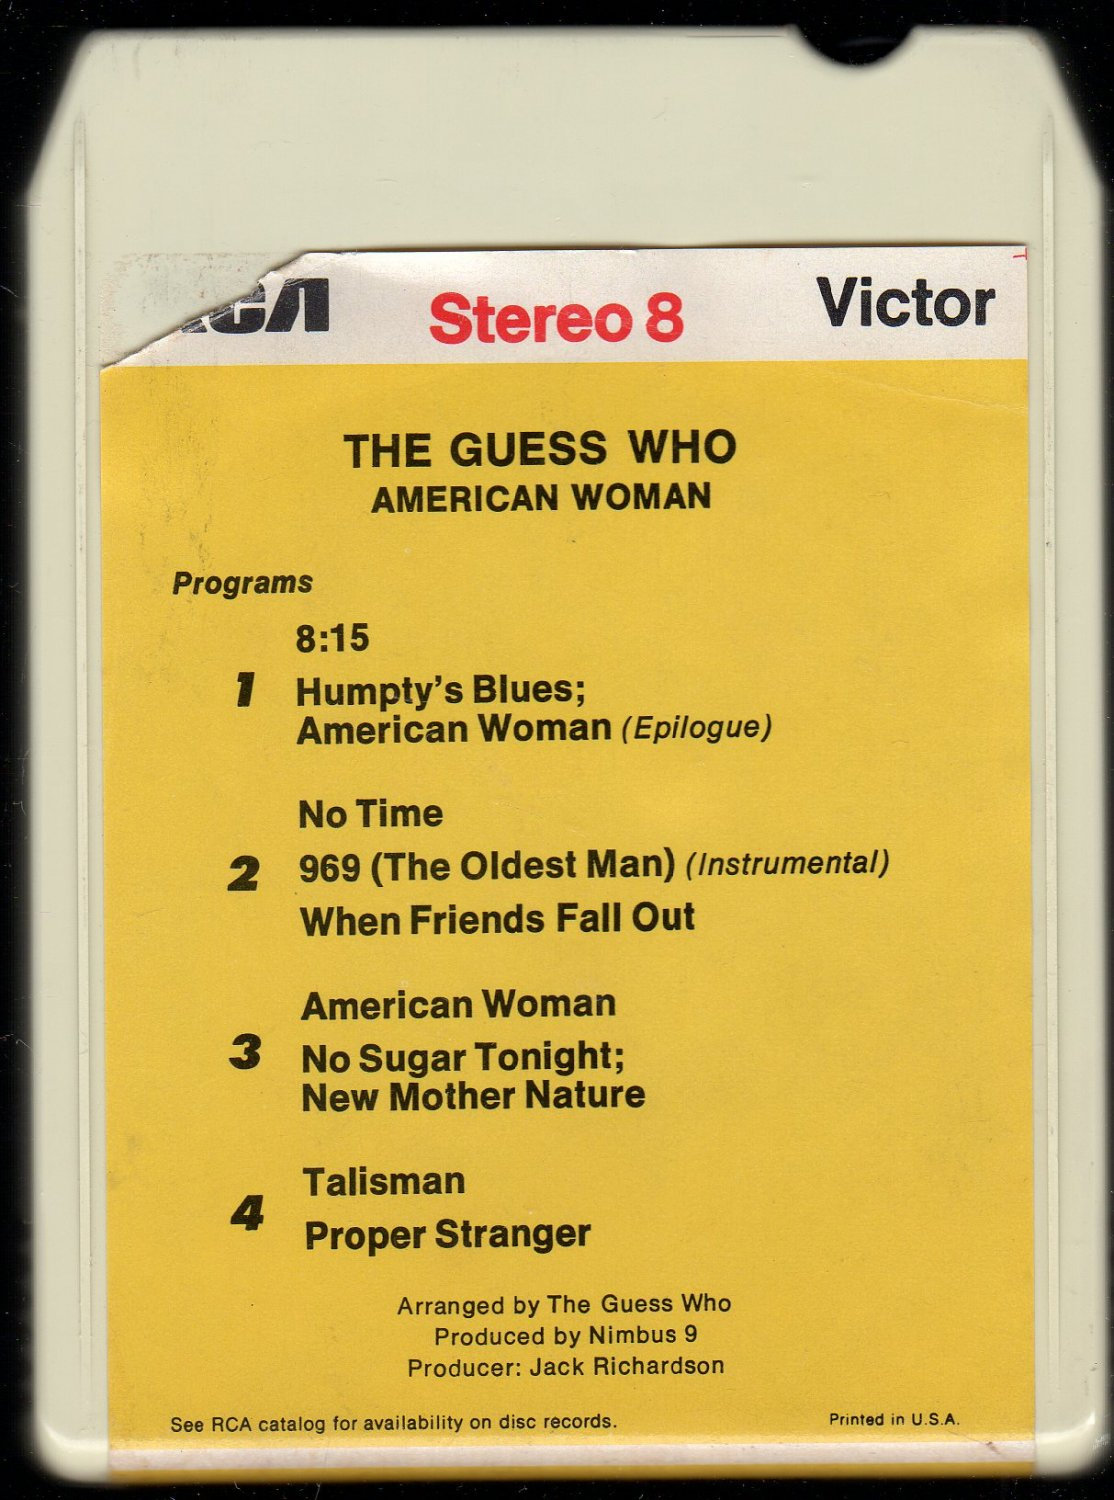 The Guess Who - American Woman 1970 RCA 8-track tape